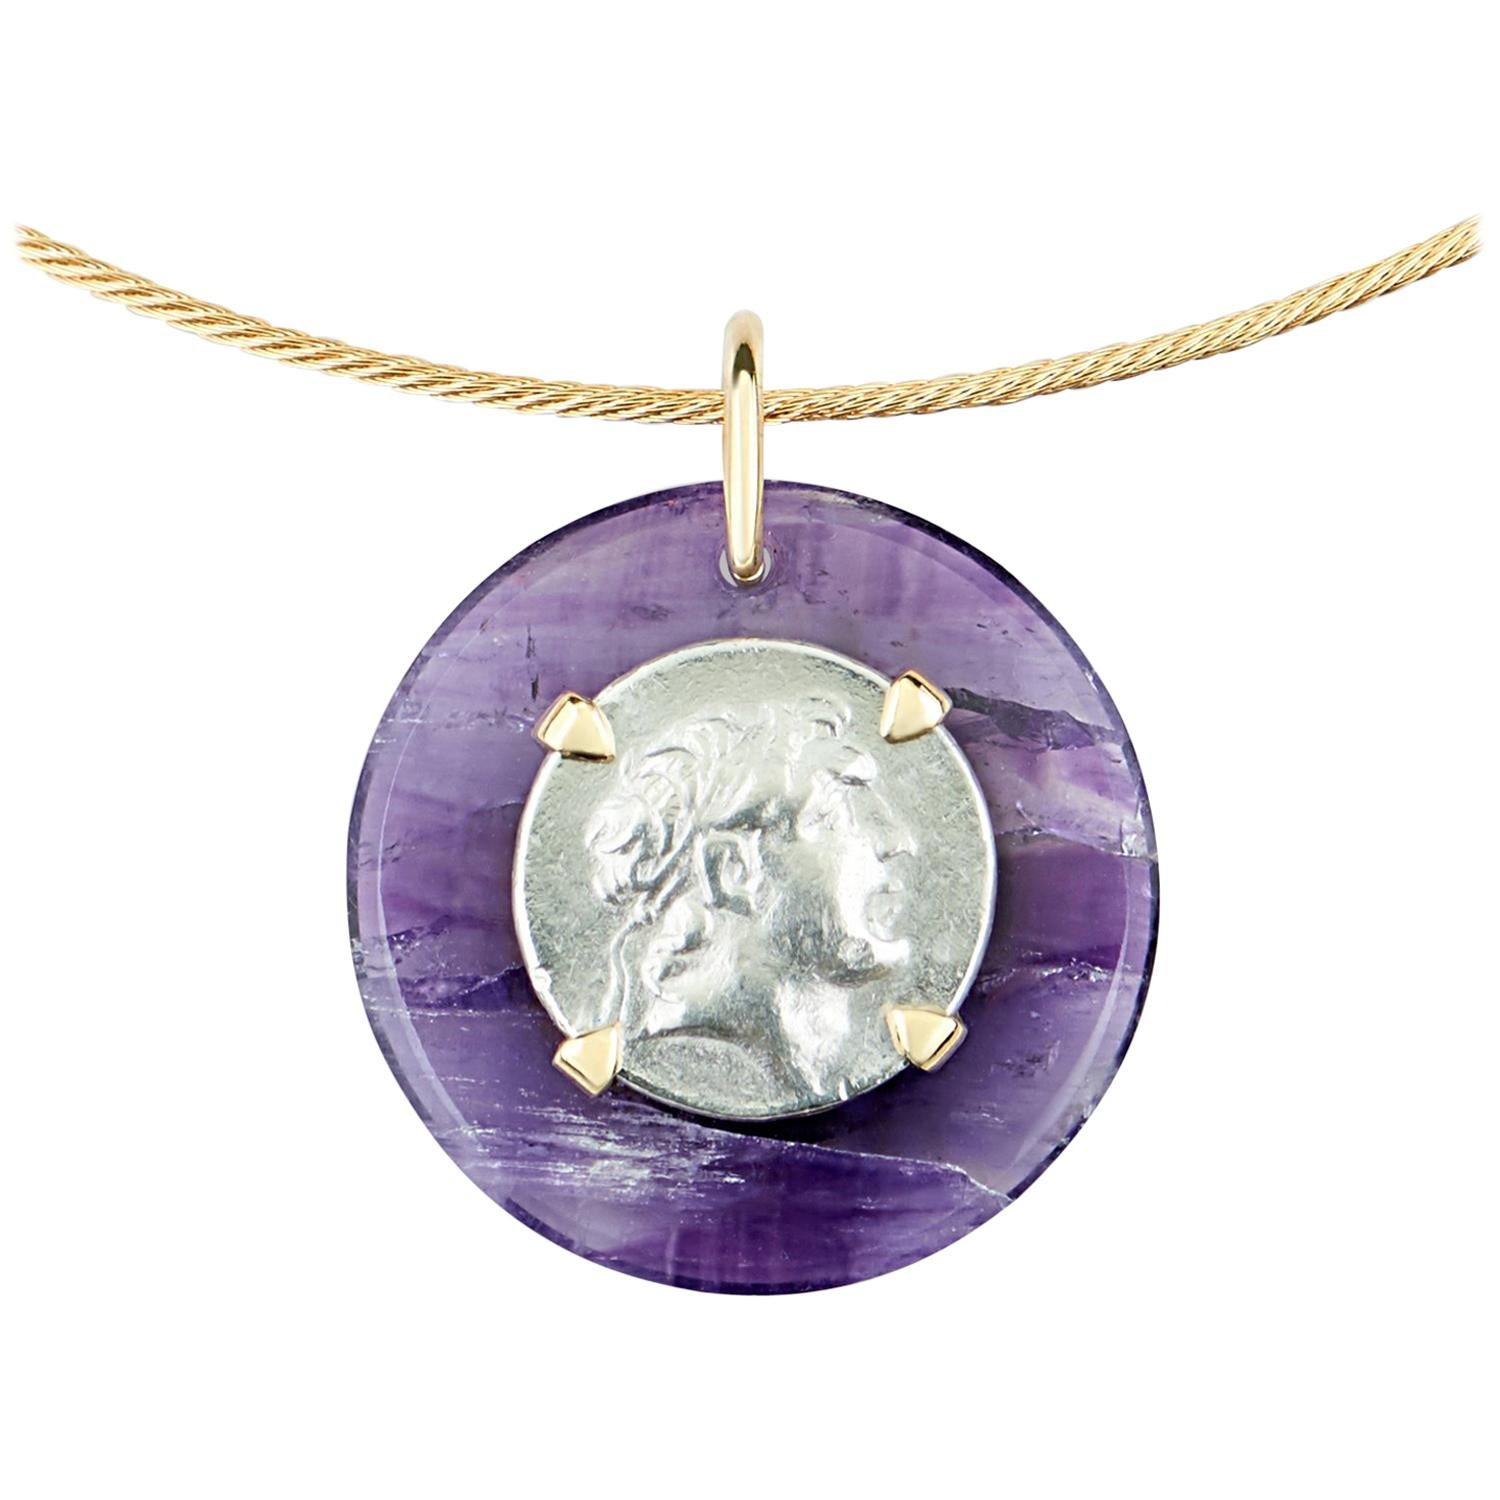 Dubini Ancient Ariarthes IX Coin Amethyst Medallion 18K Gold Choker Necklace